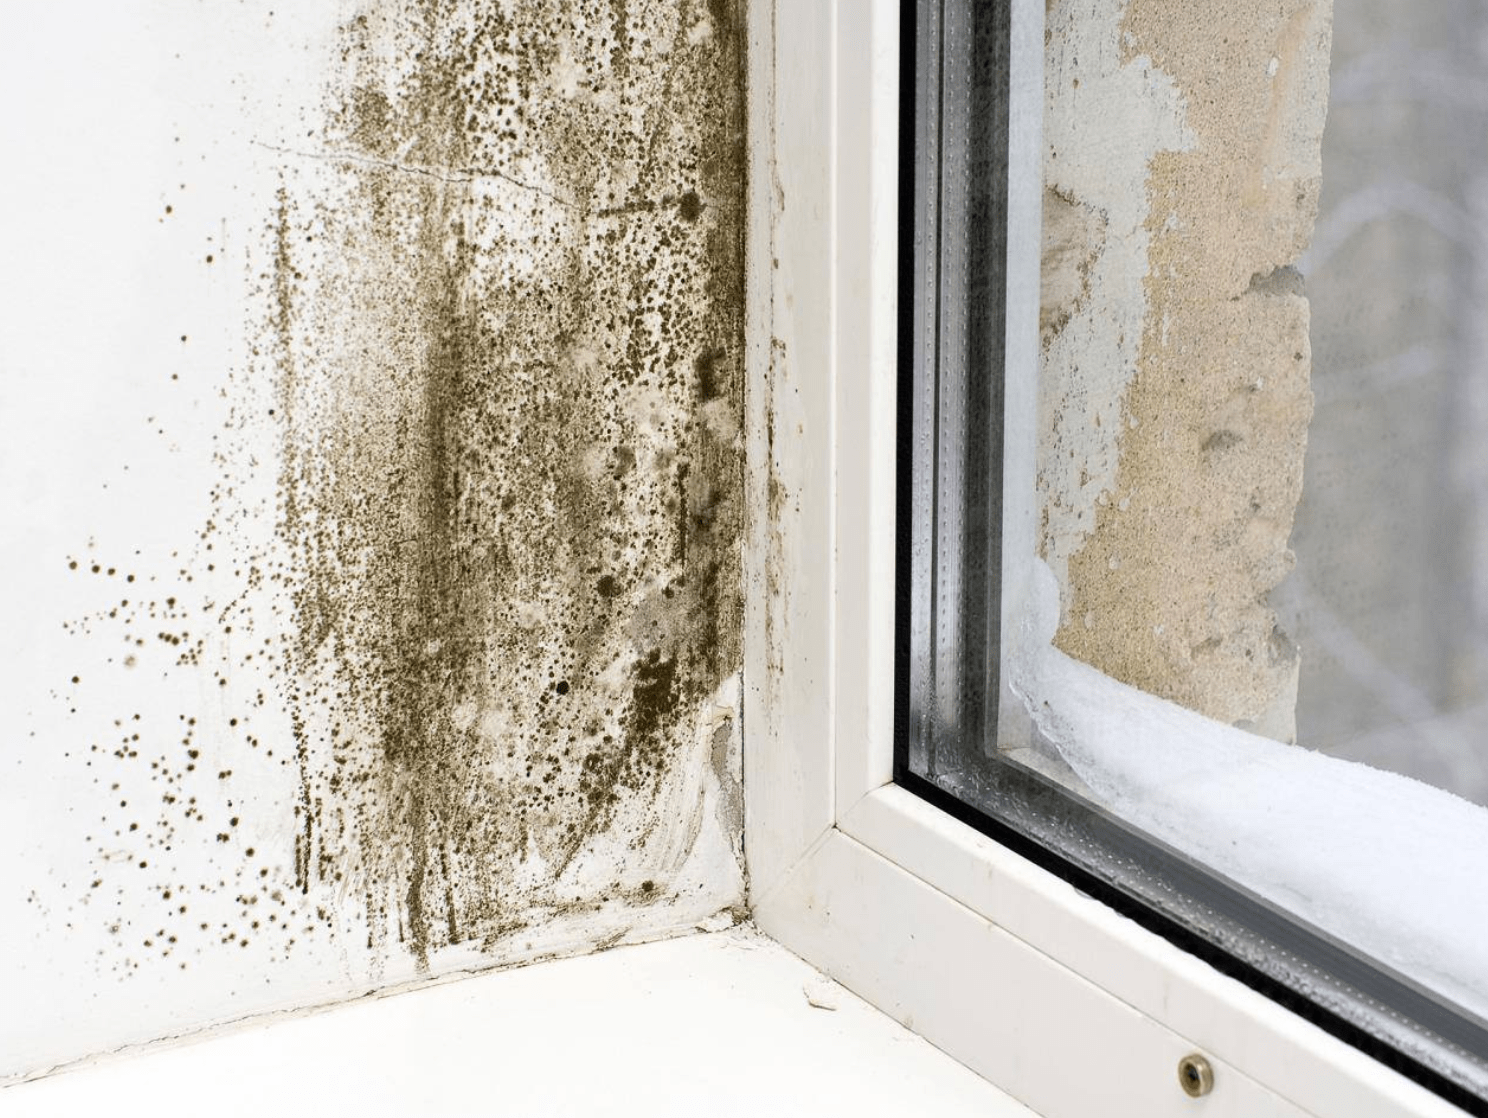 Watch Out For Common Signs Of Mold Www Buildingworks In 2020 Mold On Window Sills Musty Smell In House Mold Remover